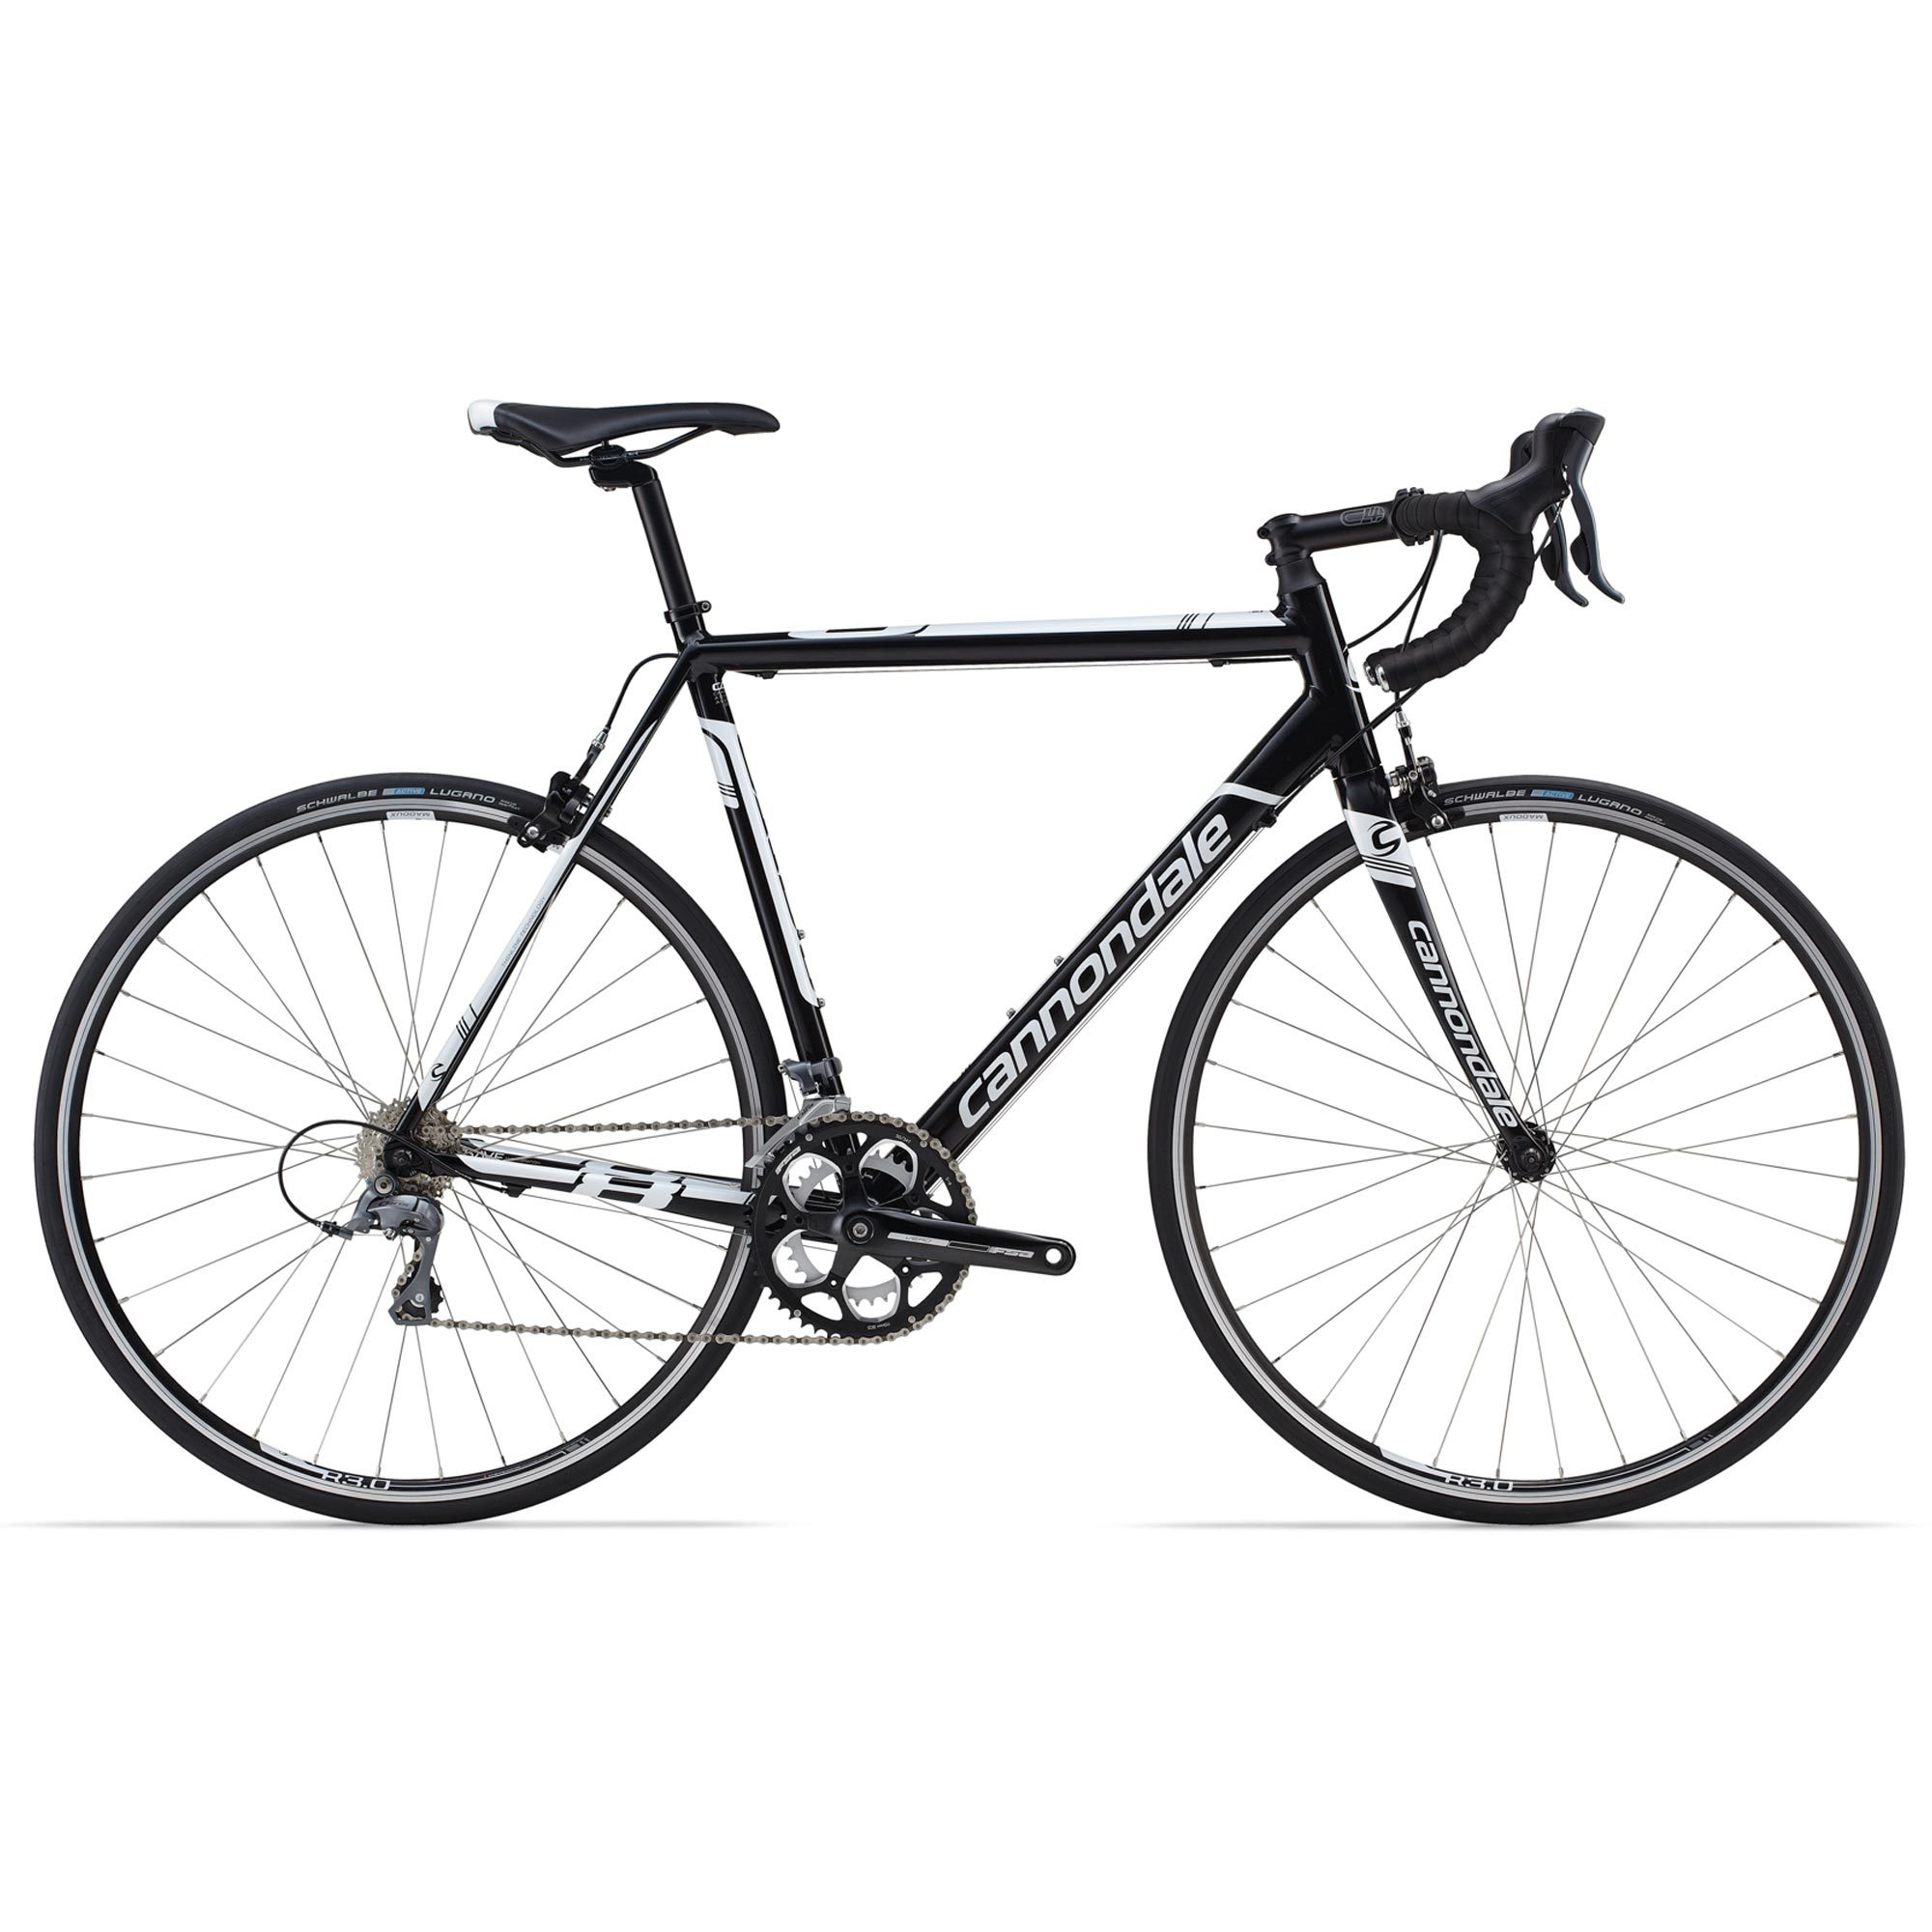 CANNONDALE CAAD8 CLARIS 8 2016 ROAD BIKE BLACK